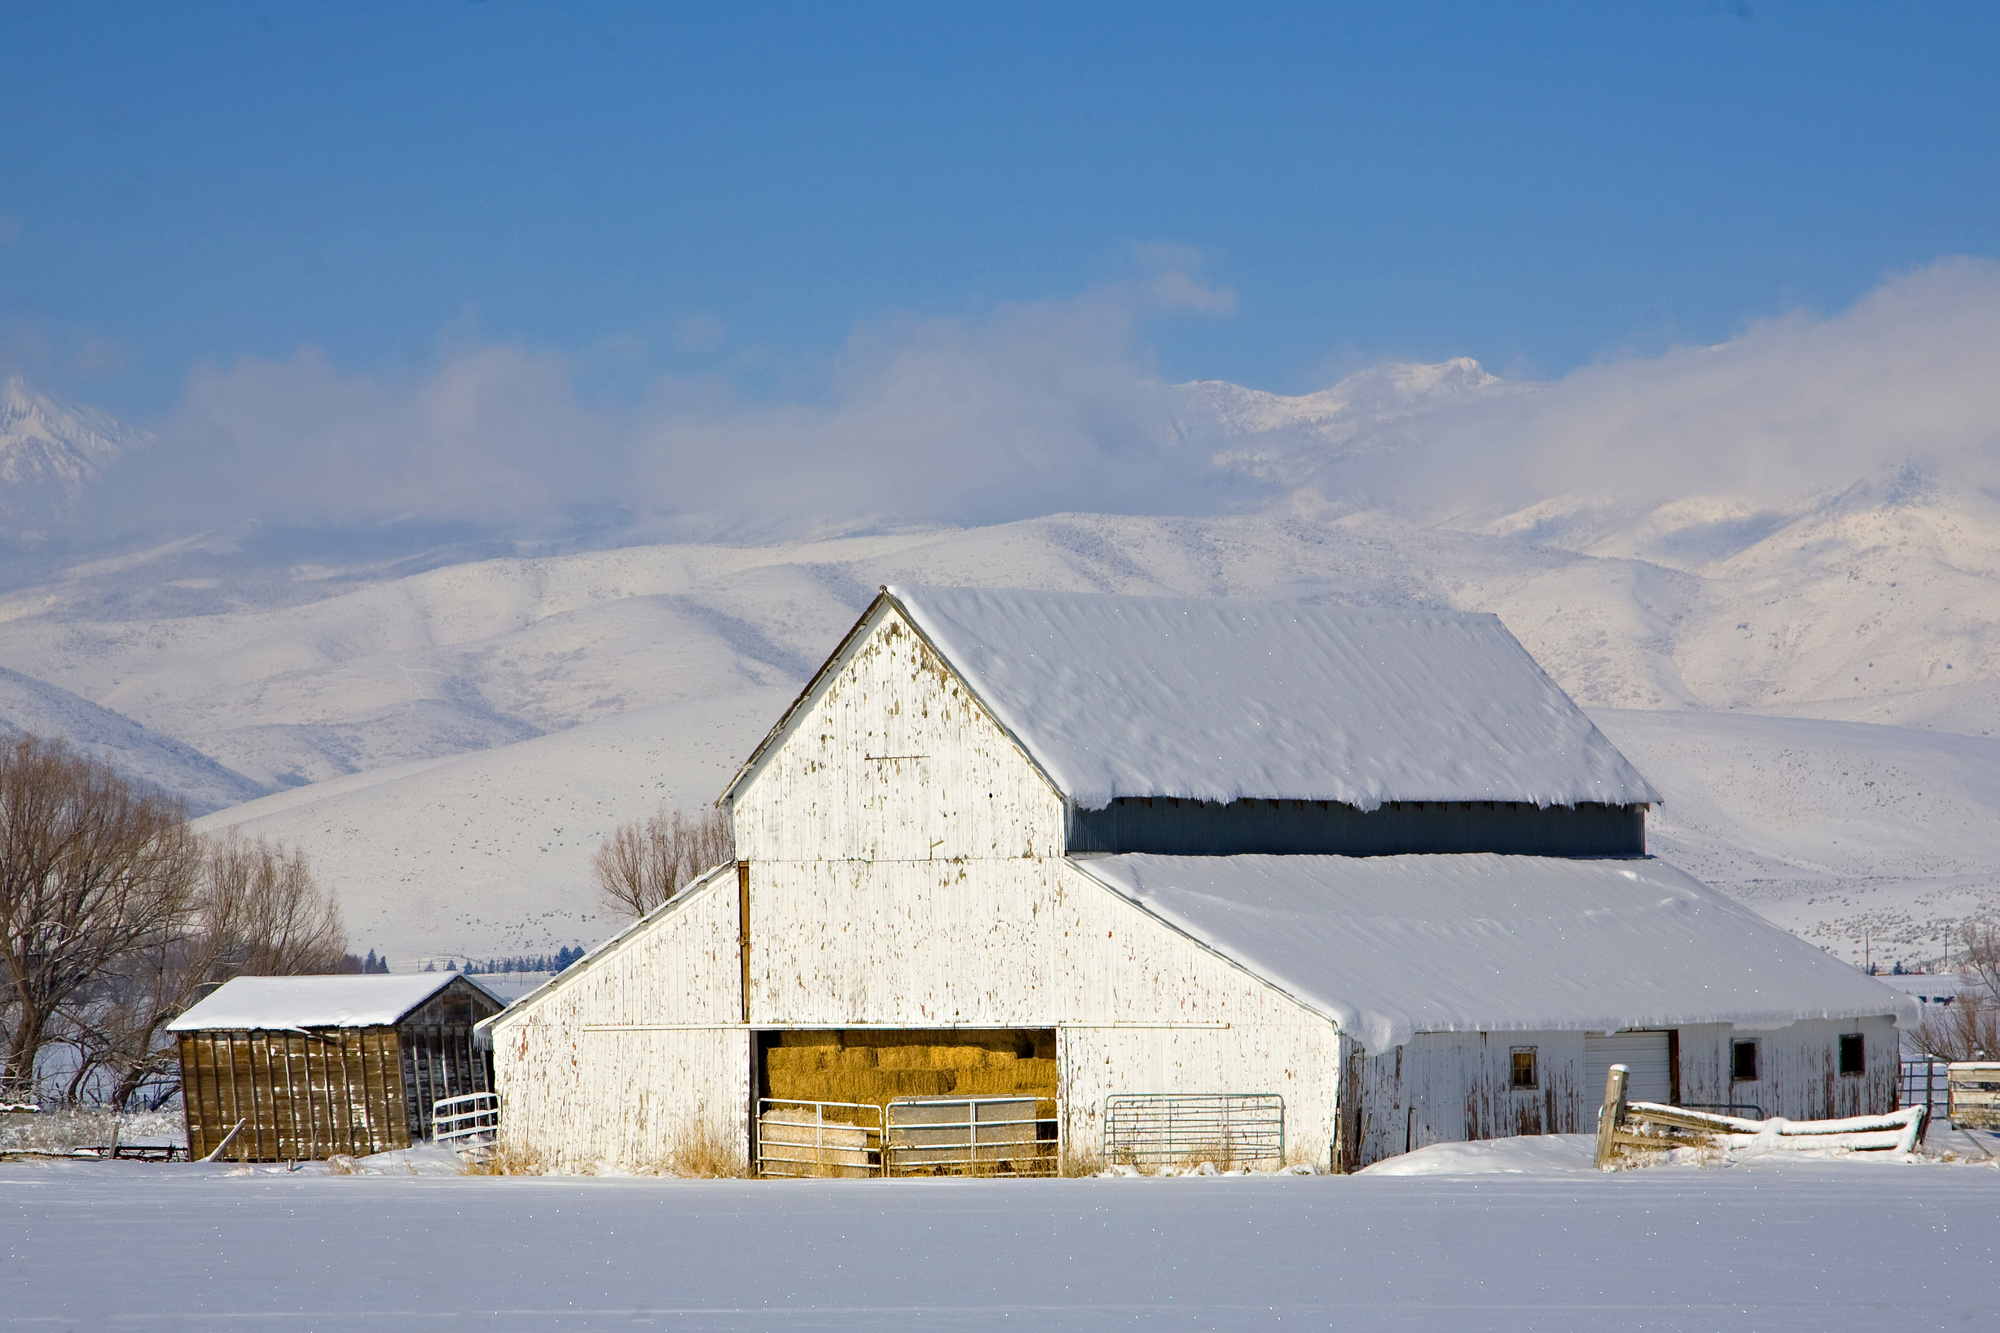 snow-covered farm barn and hills